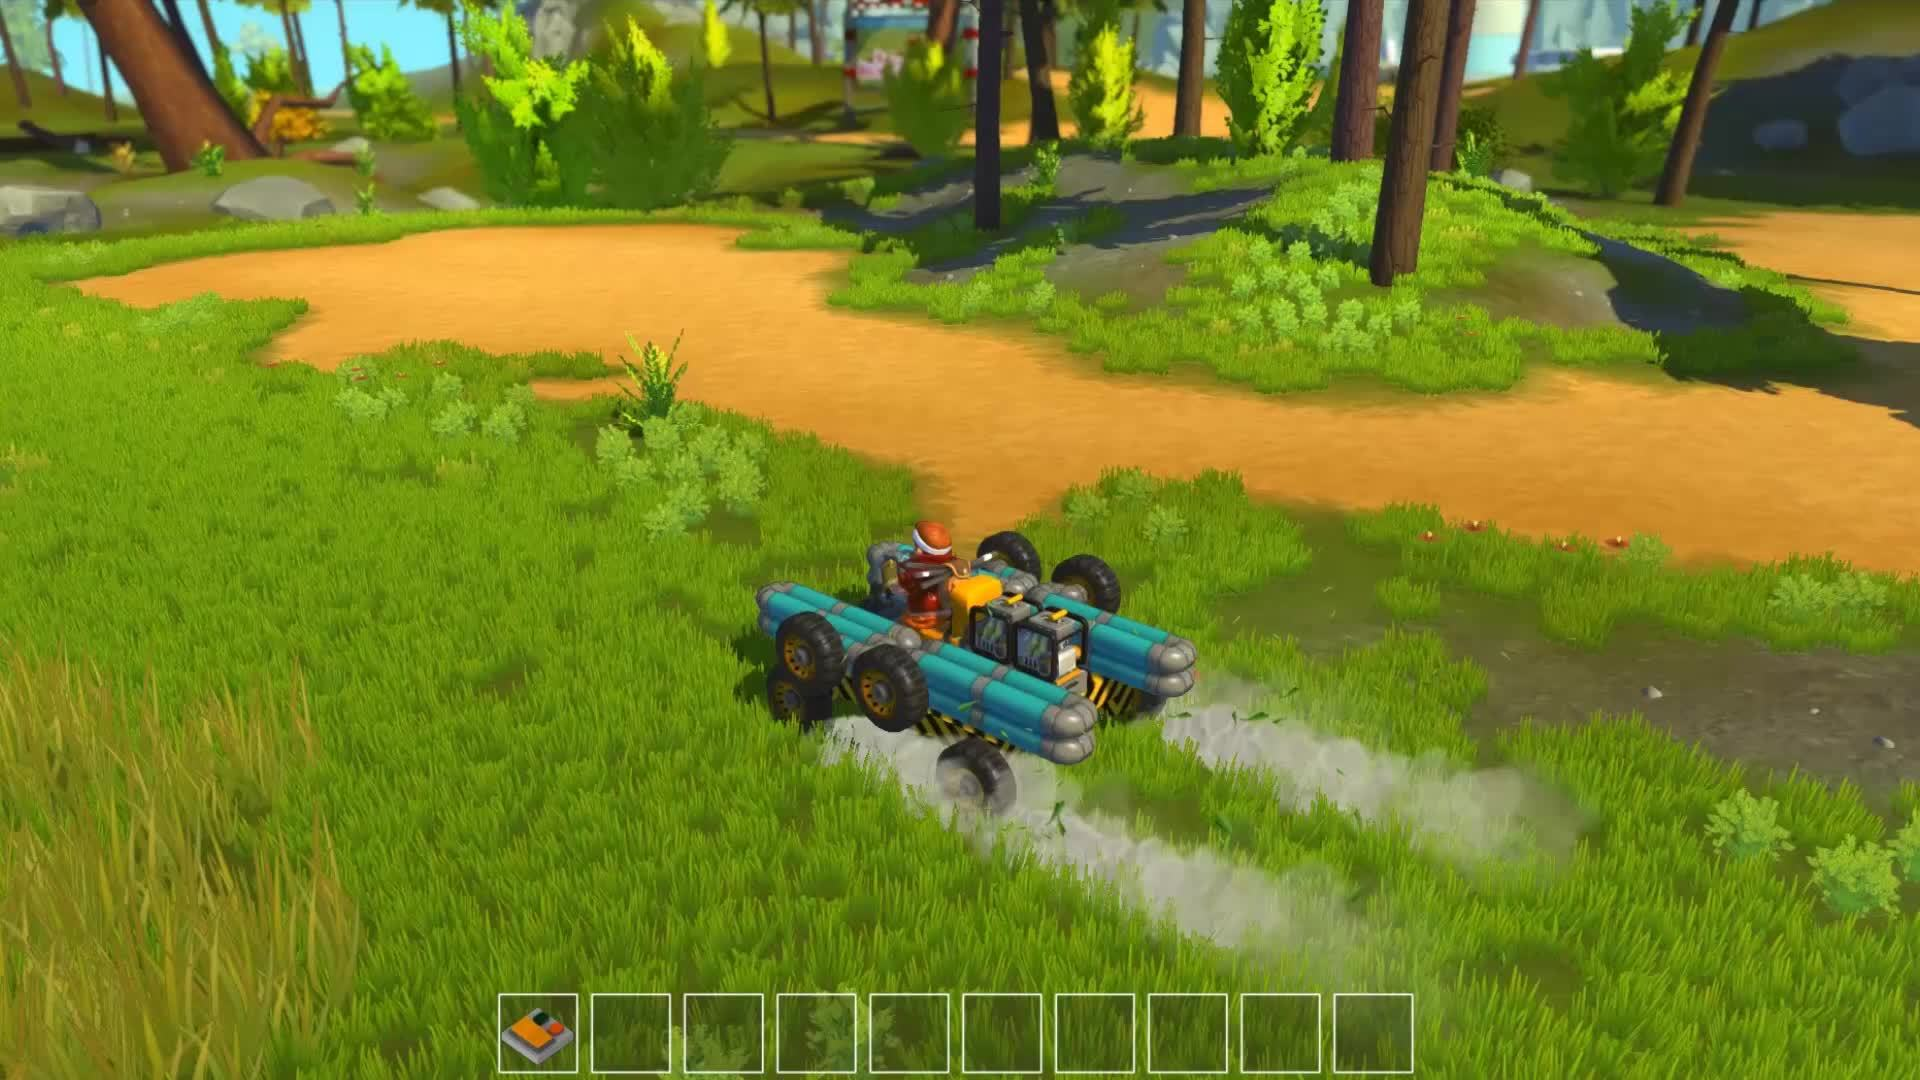 scrapmechanic, Extending car 2.0 GIFs